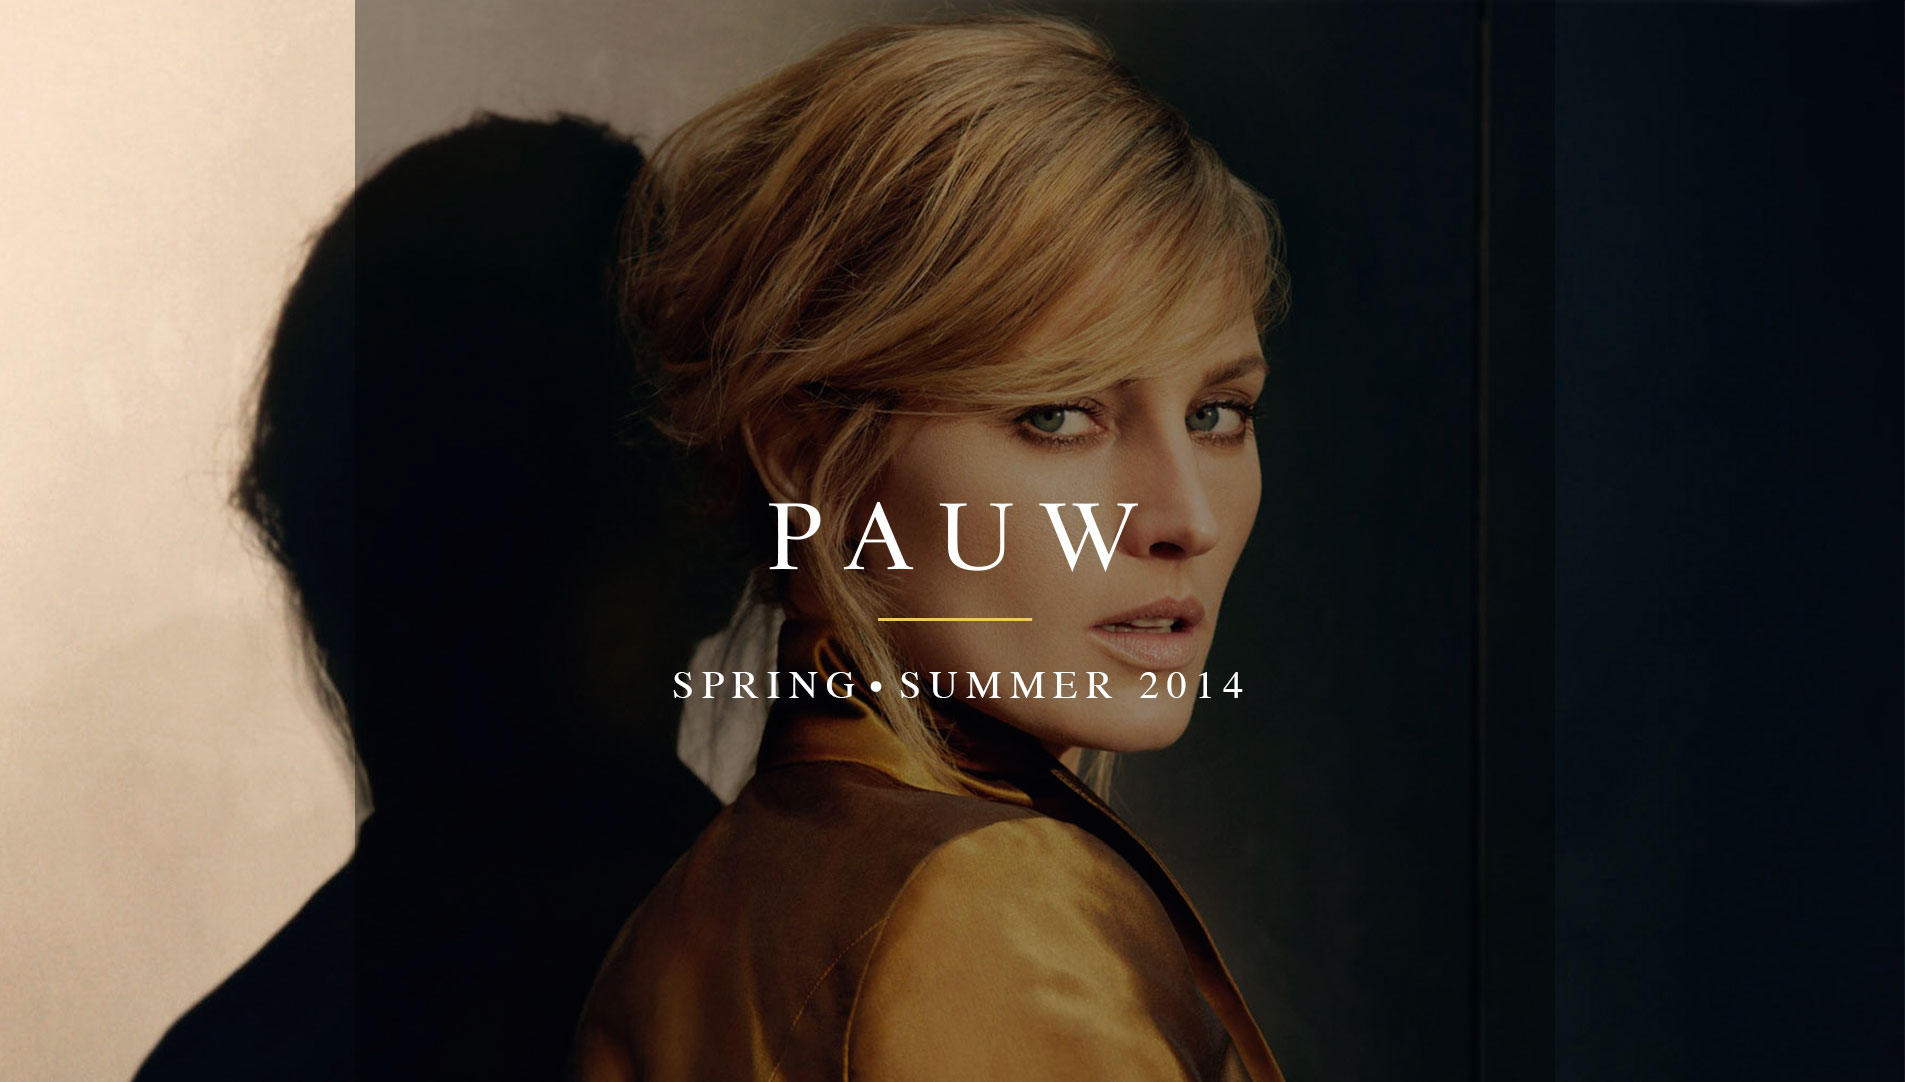 branding agency hk Pauw Official slideshow 00